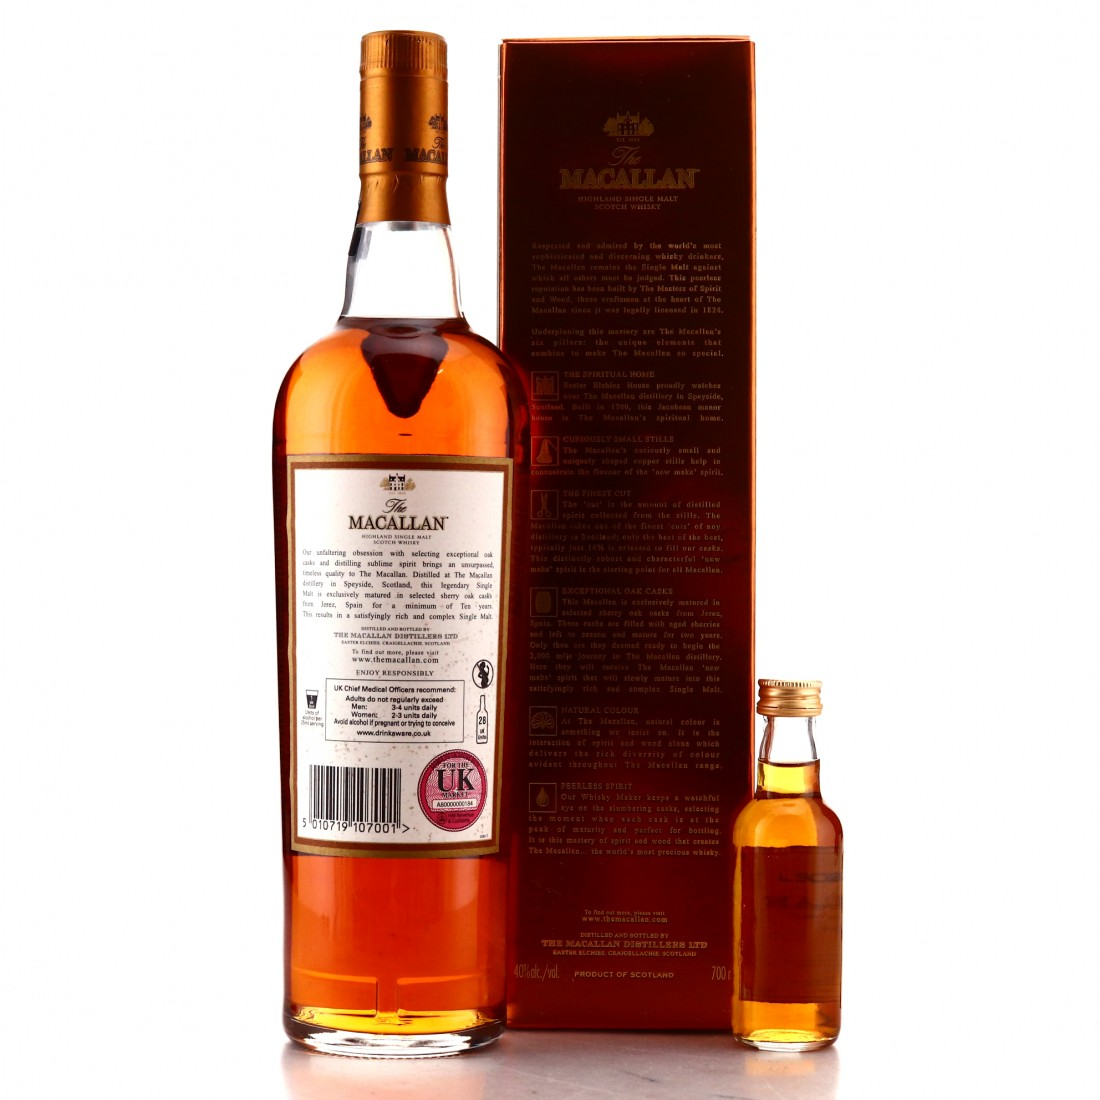 Macallan 10 Year Old with Miniature